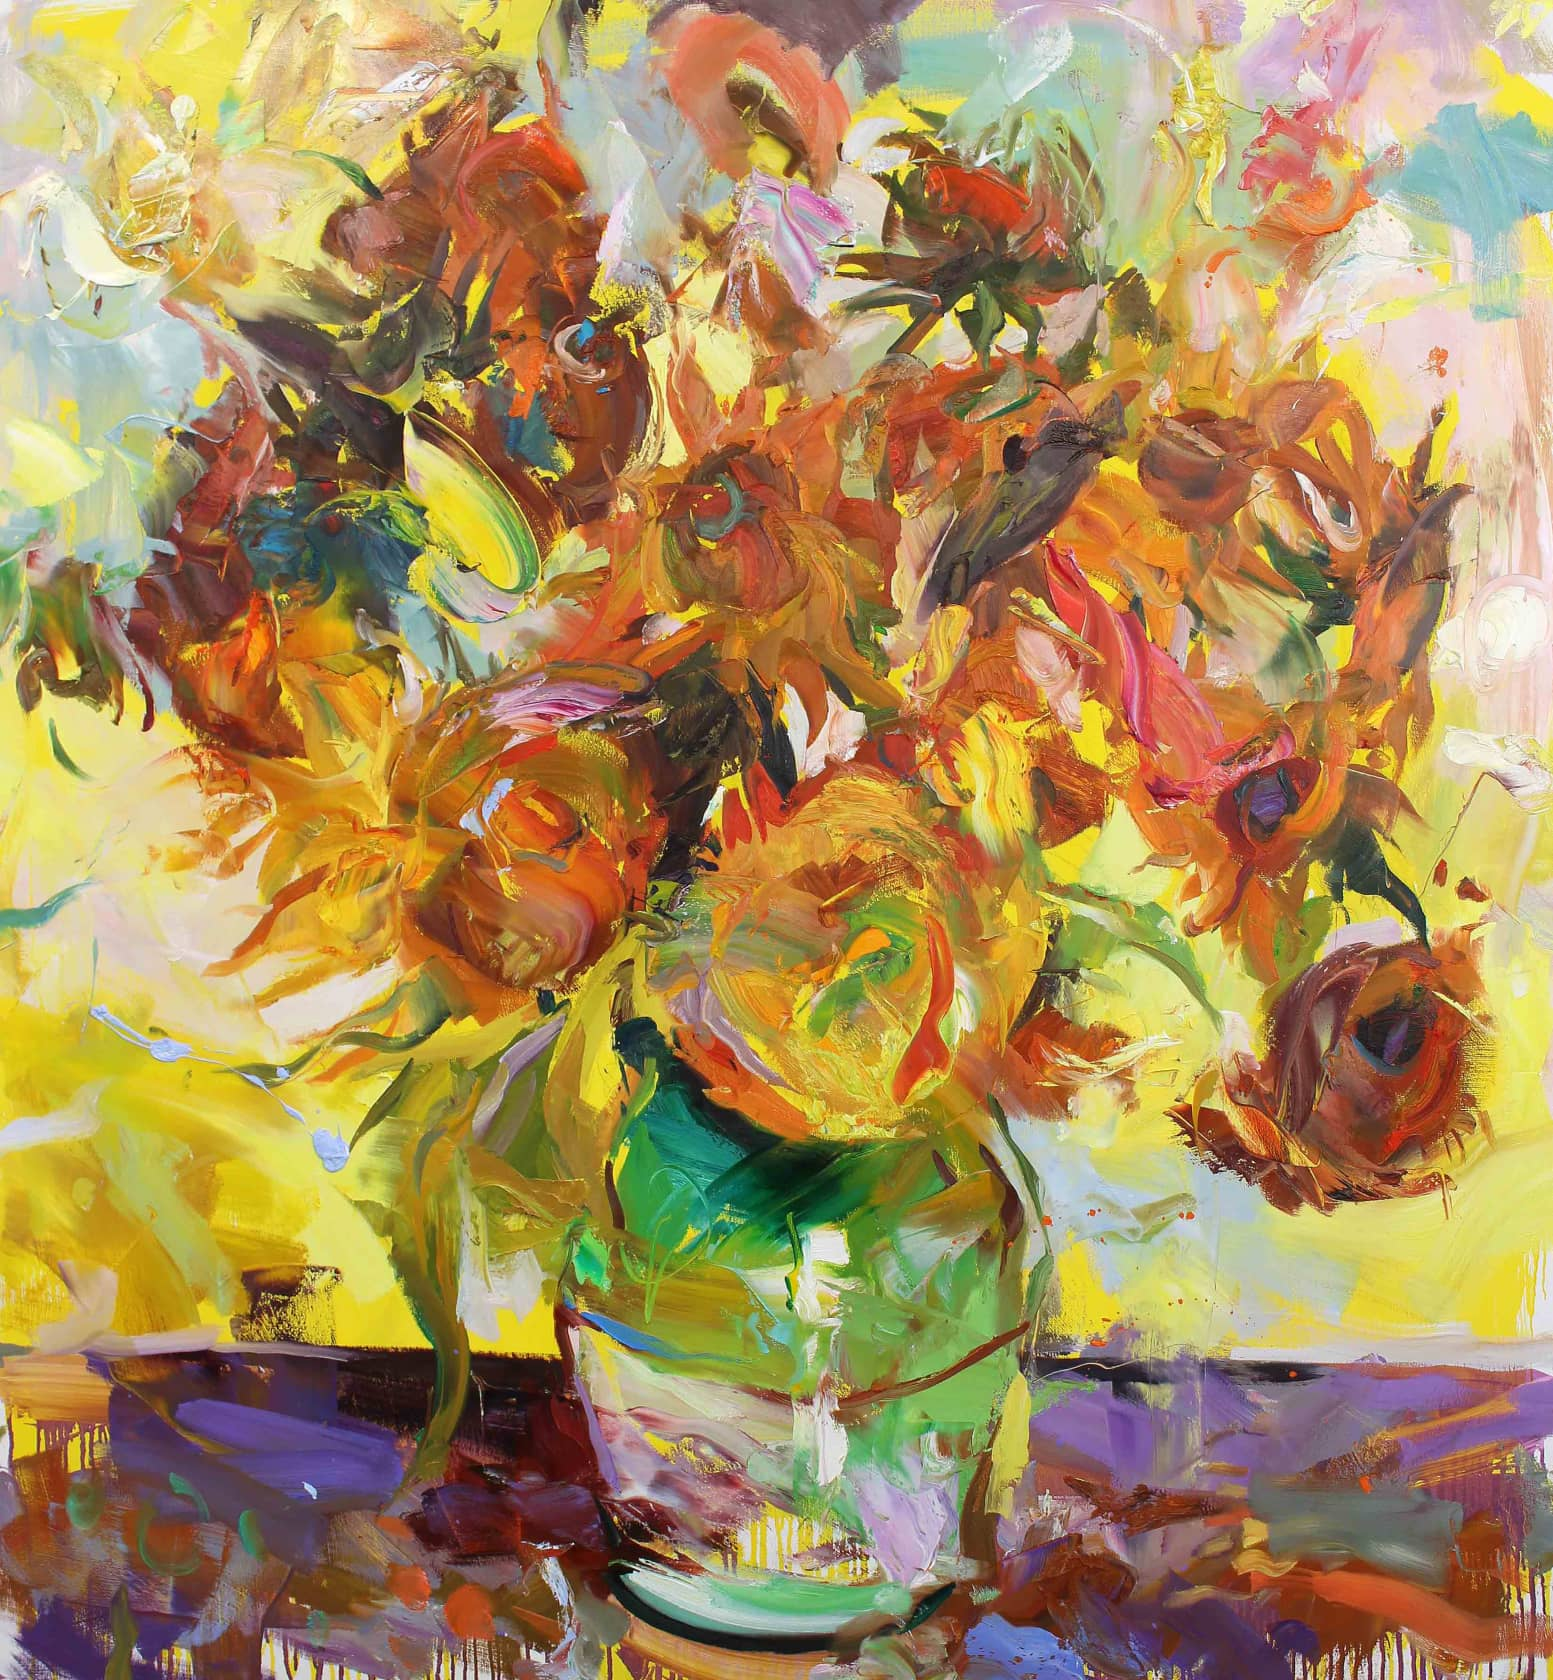 Paul Wright, The Flowers (after Van Gogh), 2017